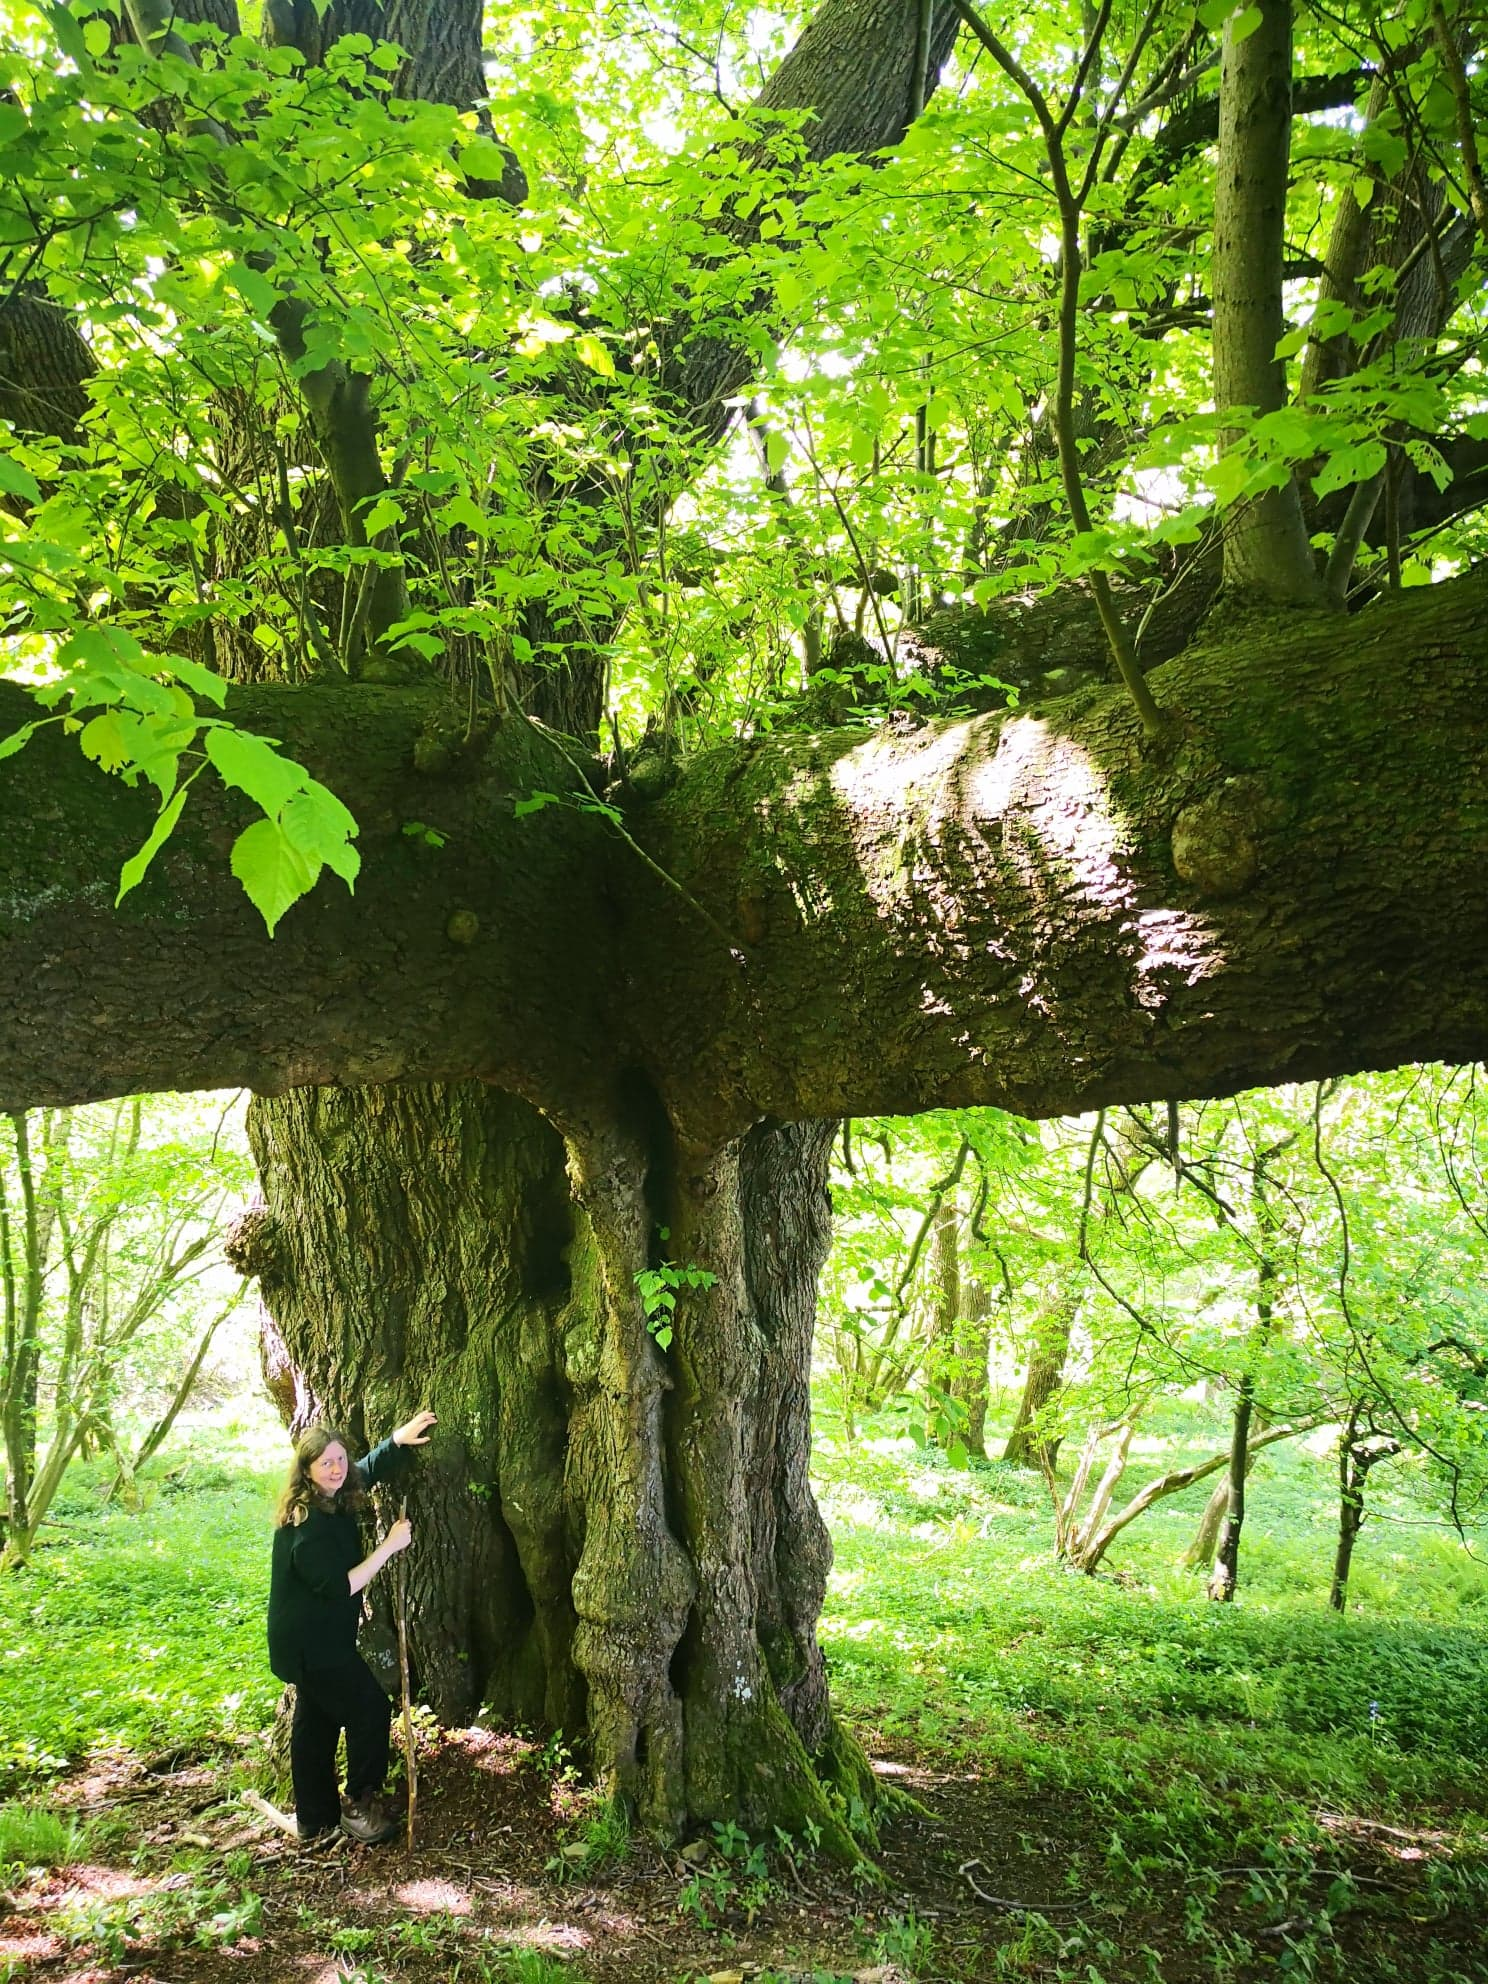 Giant tree Mortimer Forest May 19